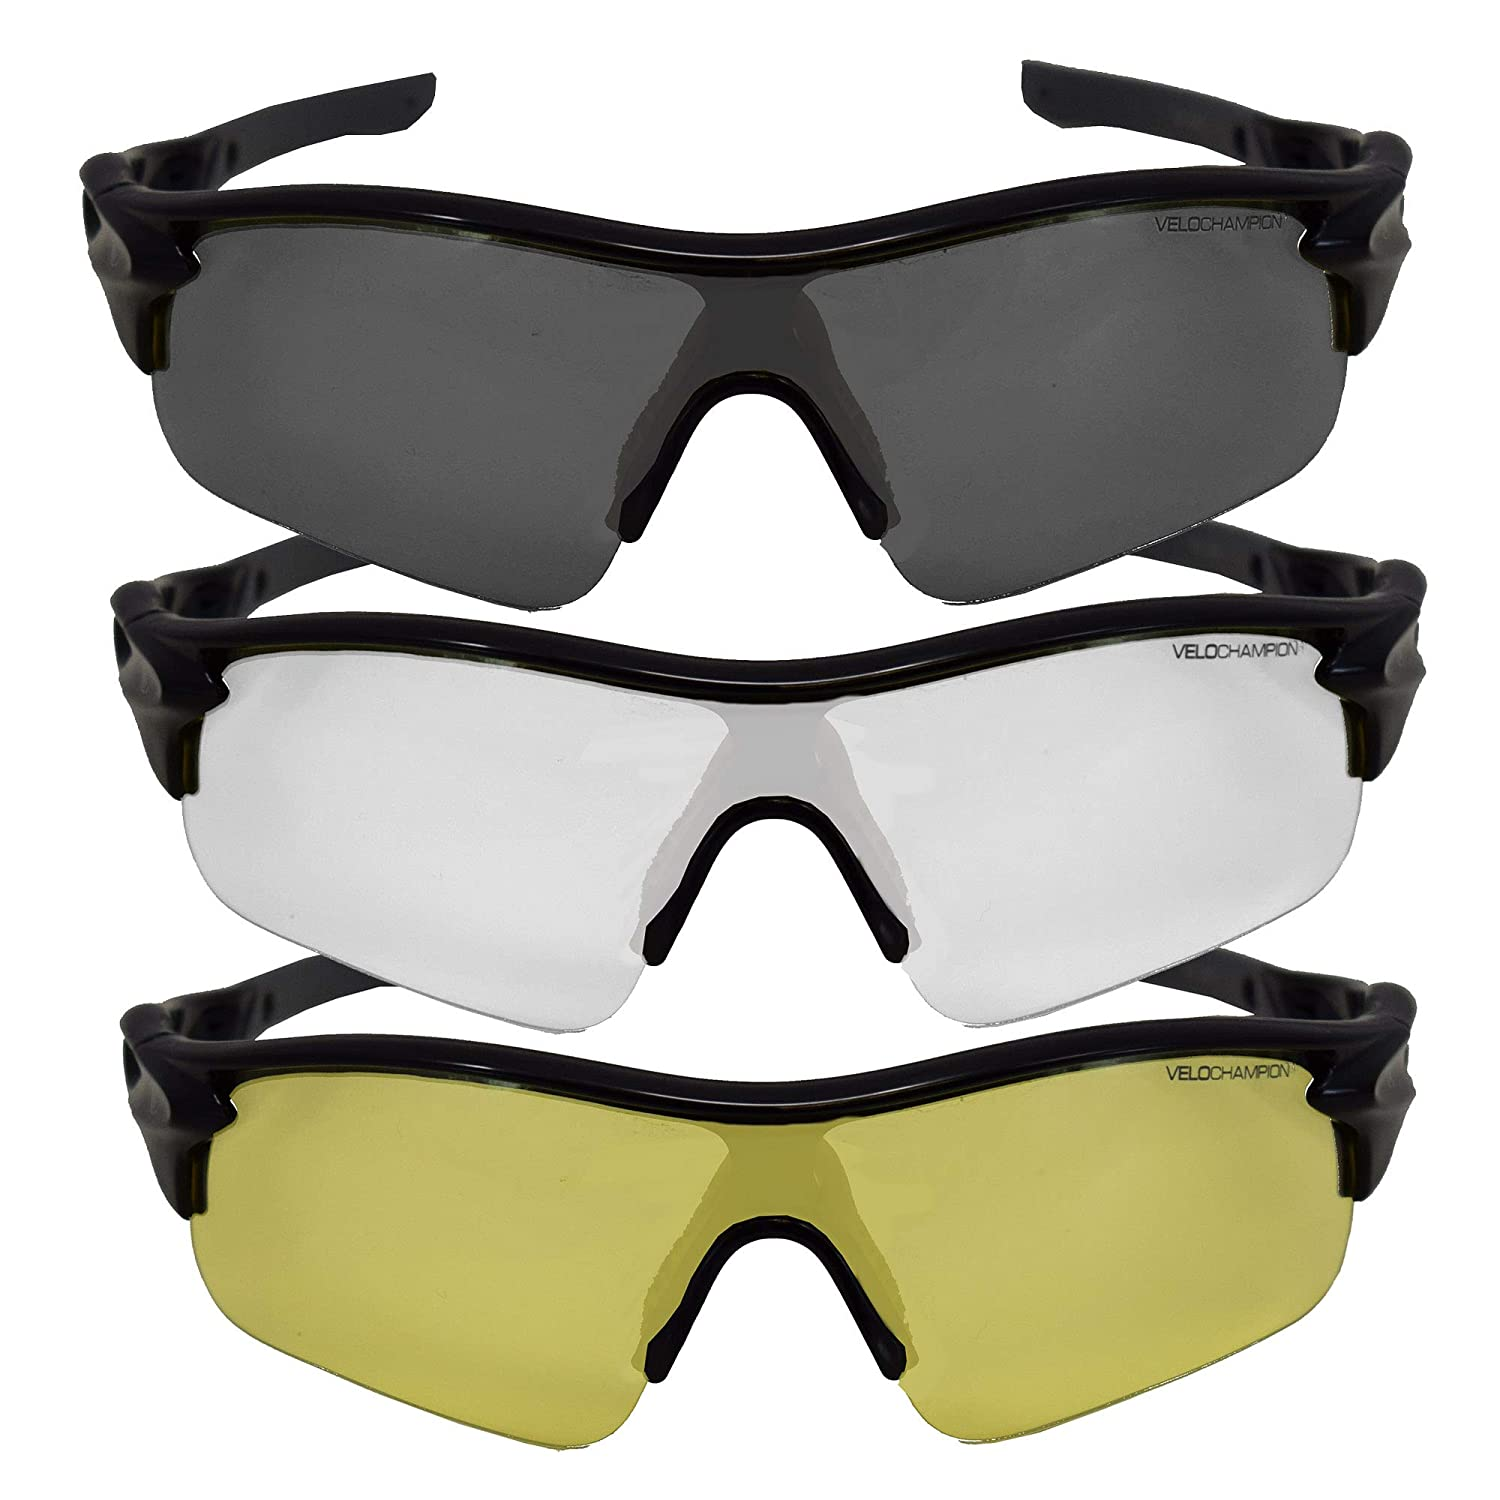 ee27a0b90c1 VeloChampion Warp Cycling Sunglasses Running Shooting Sports Glasses (Black)   Amazon.co.uk  Sports   Outdoors